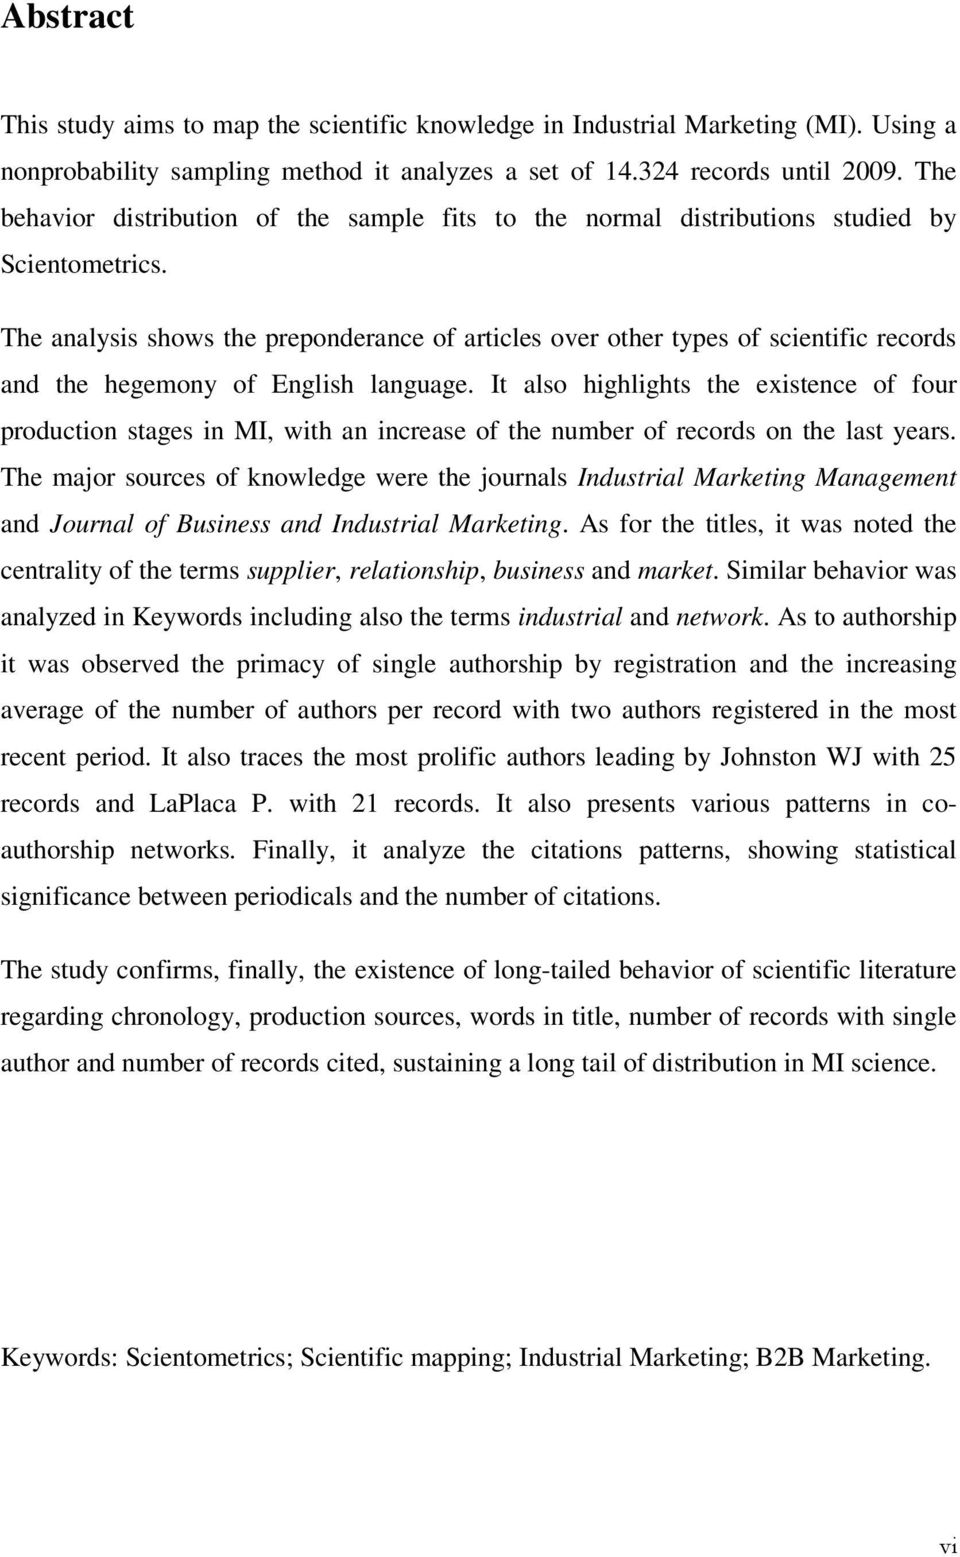 The analysis shows the preponderance of articles over other types of scientific records and the hegemony of English language.